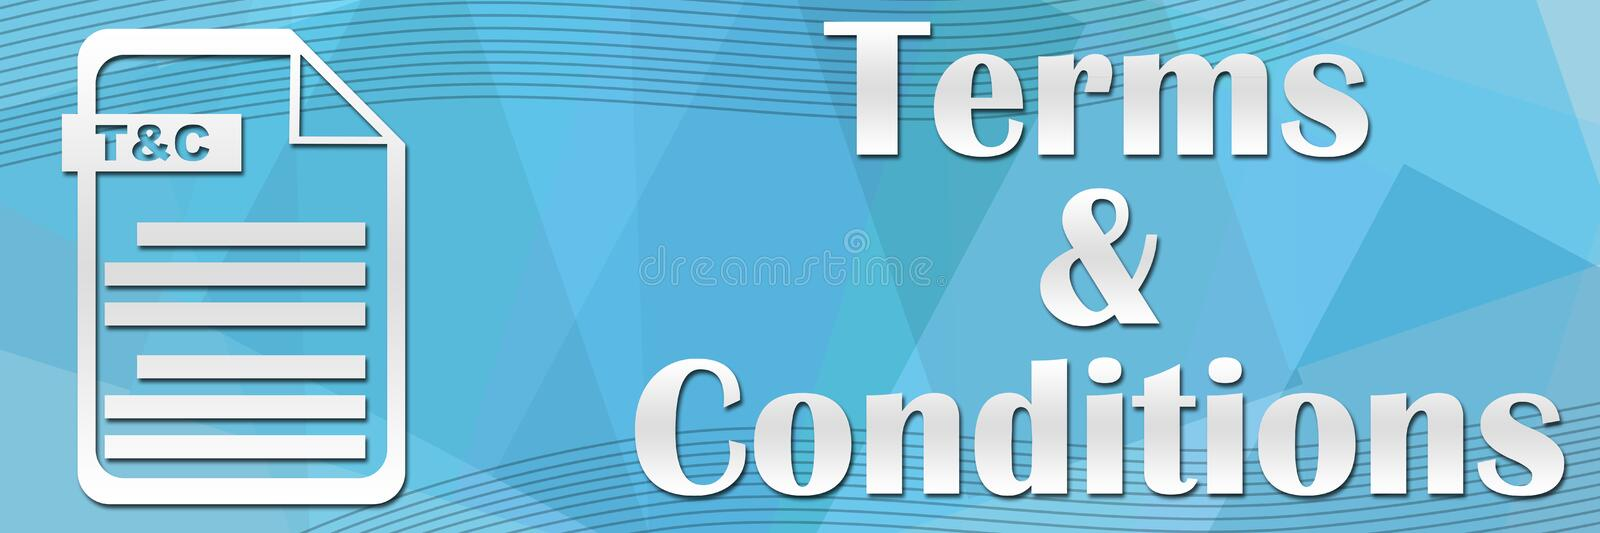 Terms And Conditions. Concept banner image with text and tnc file icon vector illustration